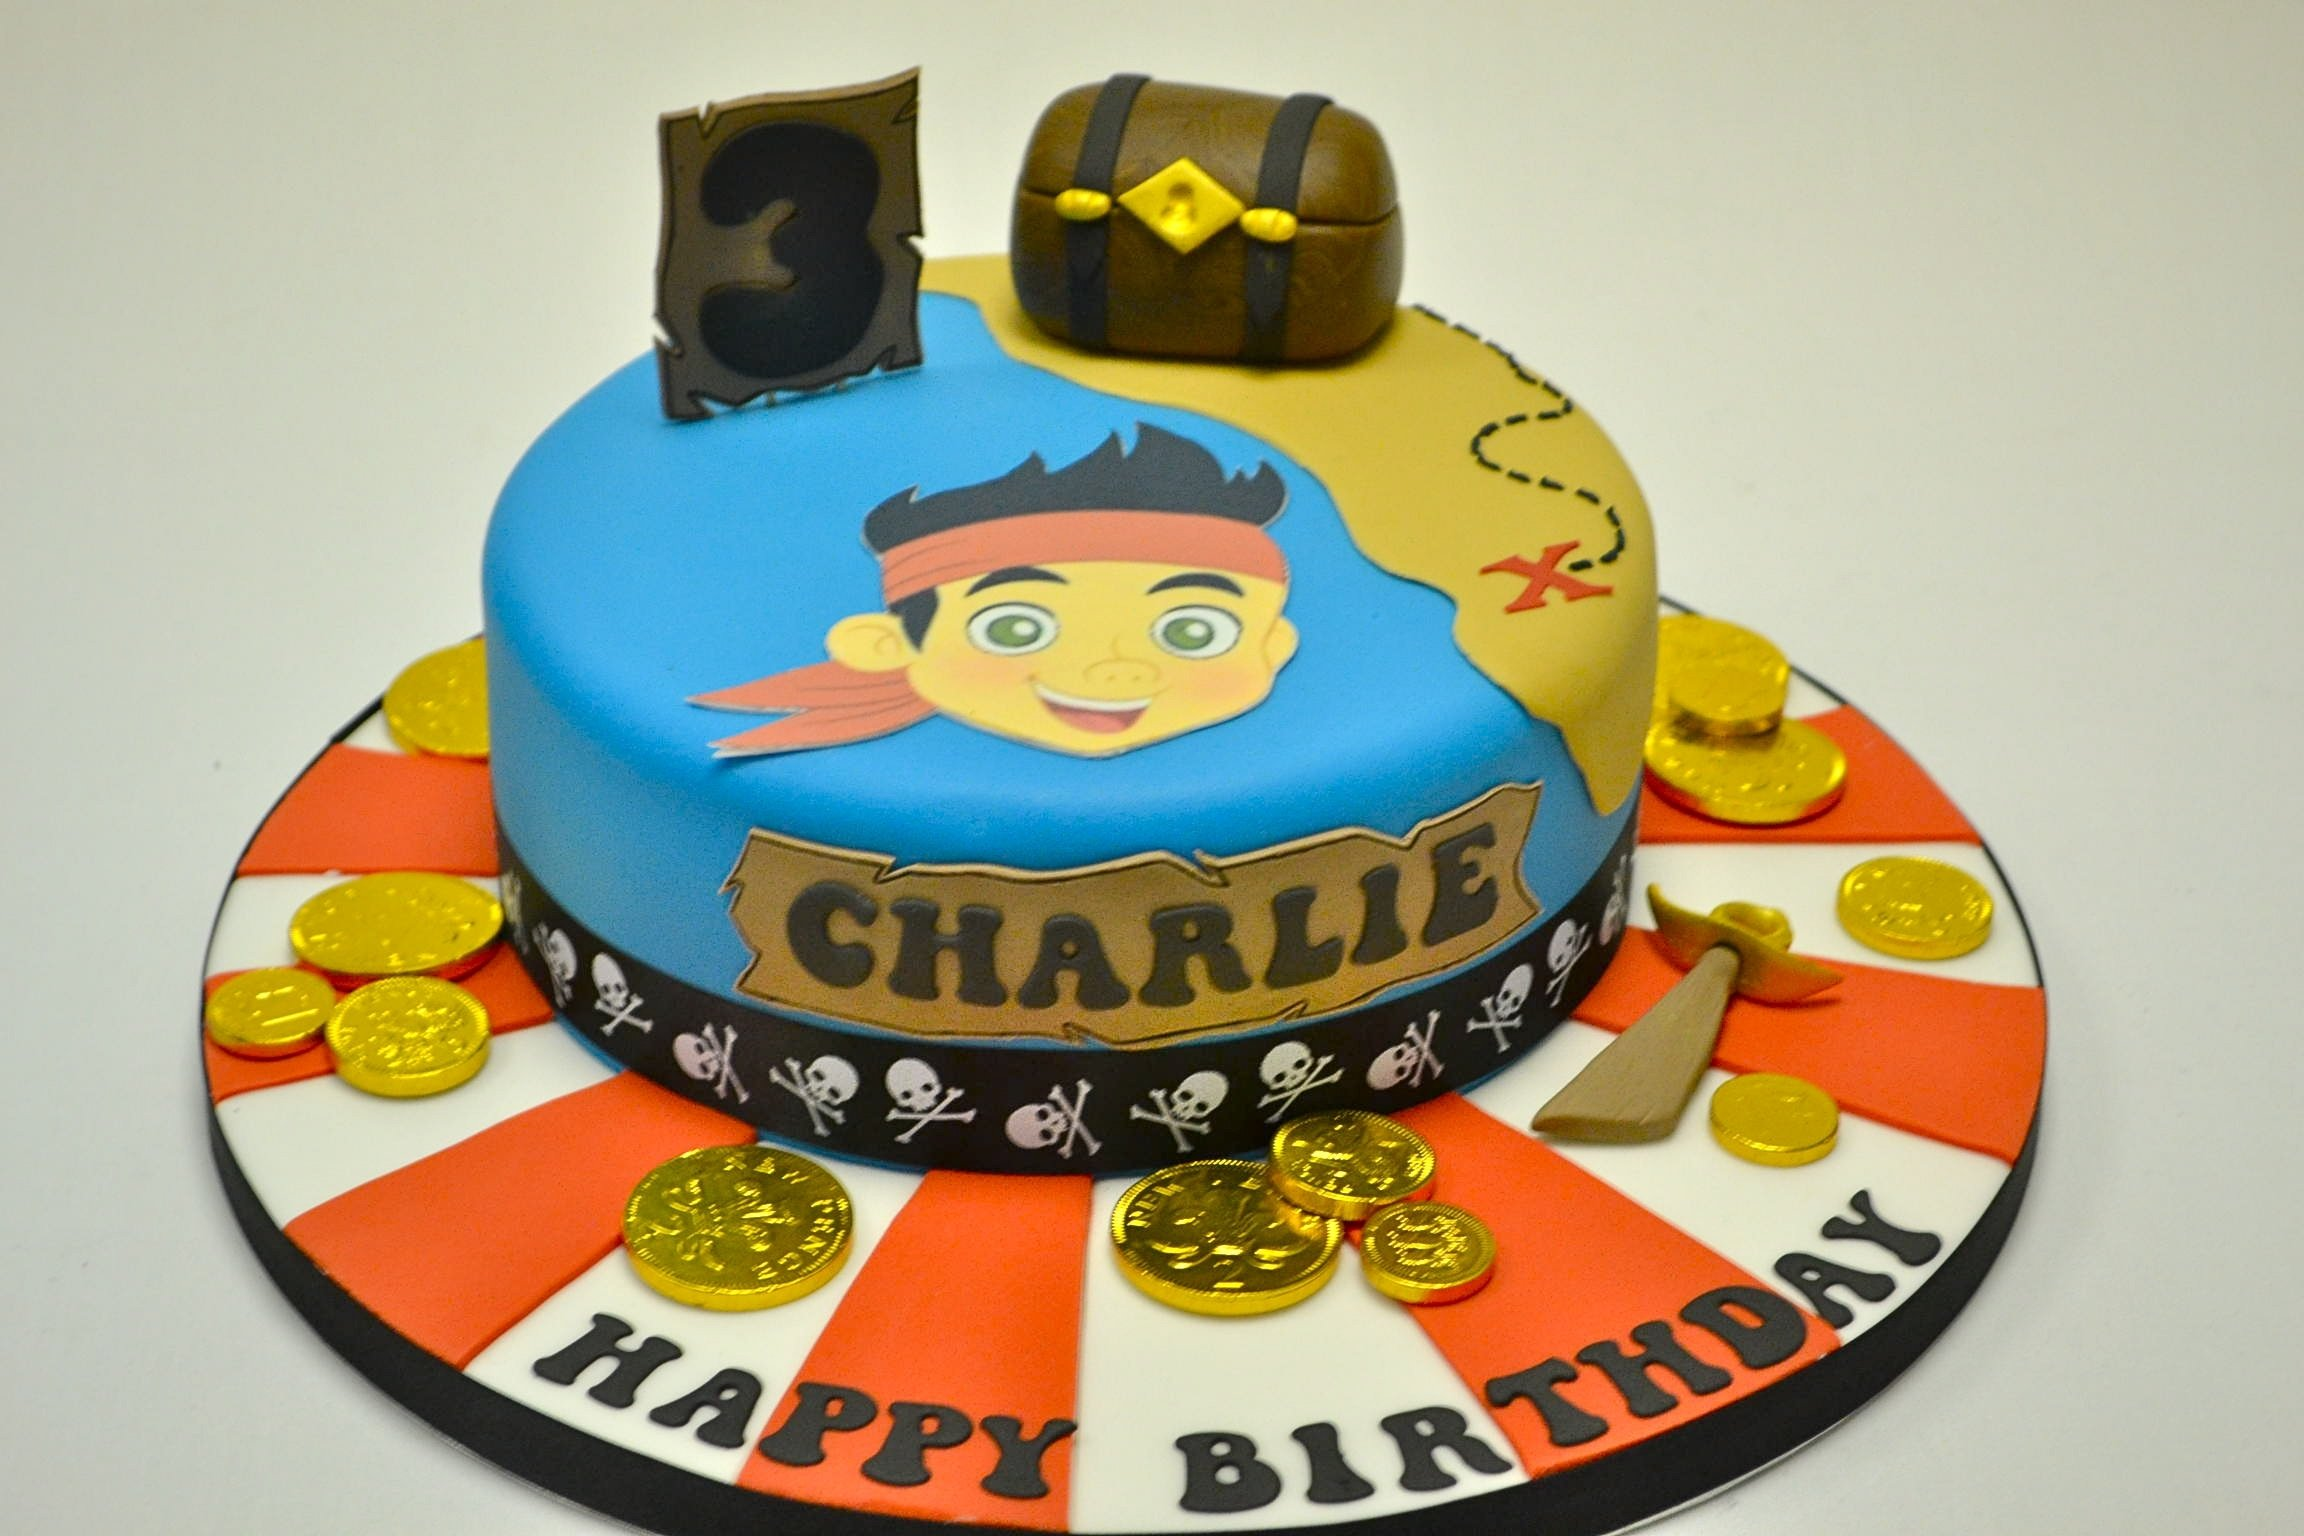 10 Lovable Jake And The Neverland Pirates Cake Ideas jake and the neverland pirates treasure cake celebration cakes 2021